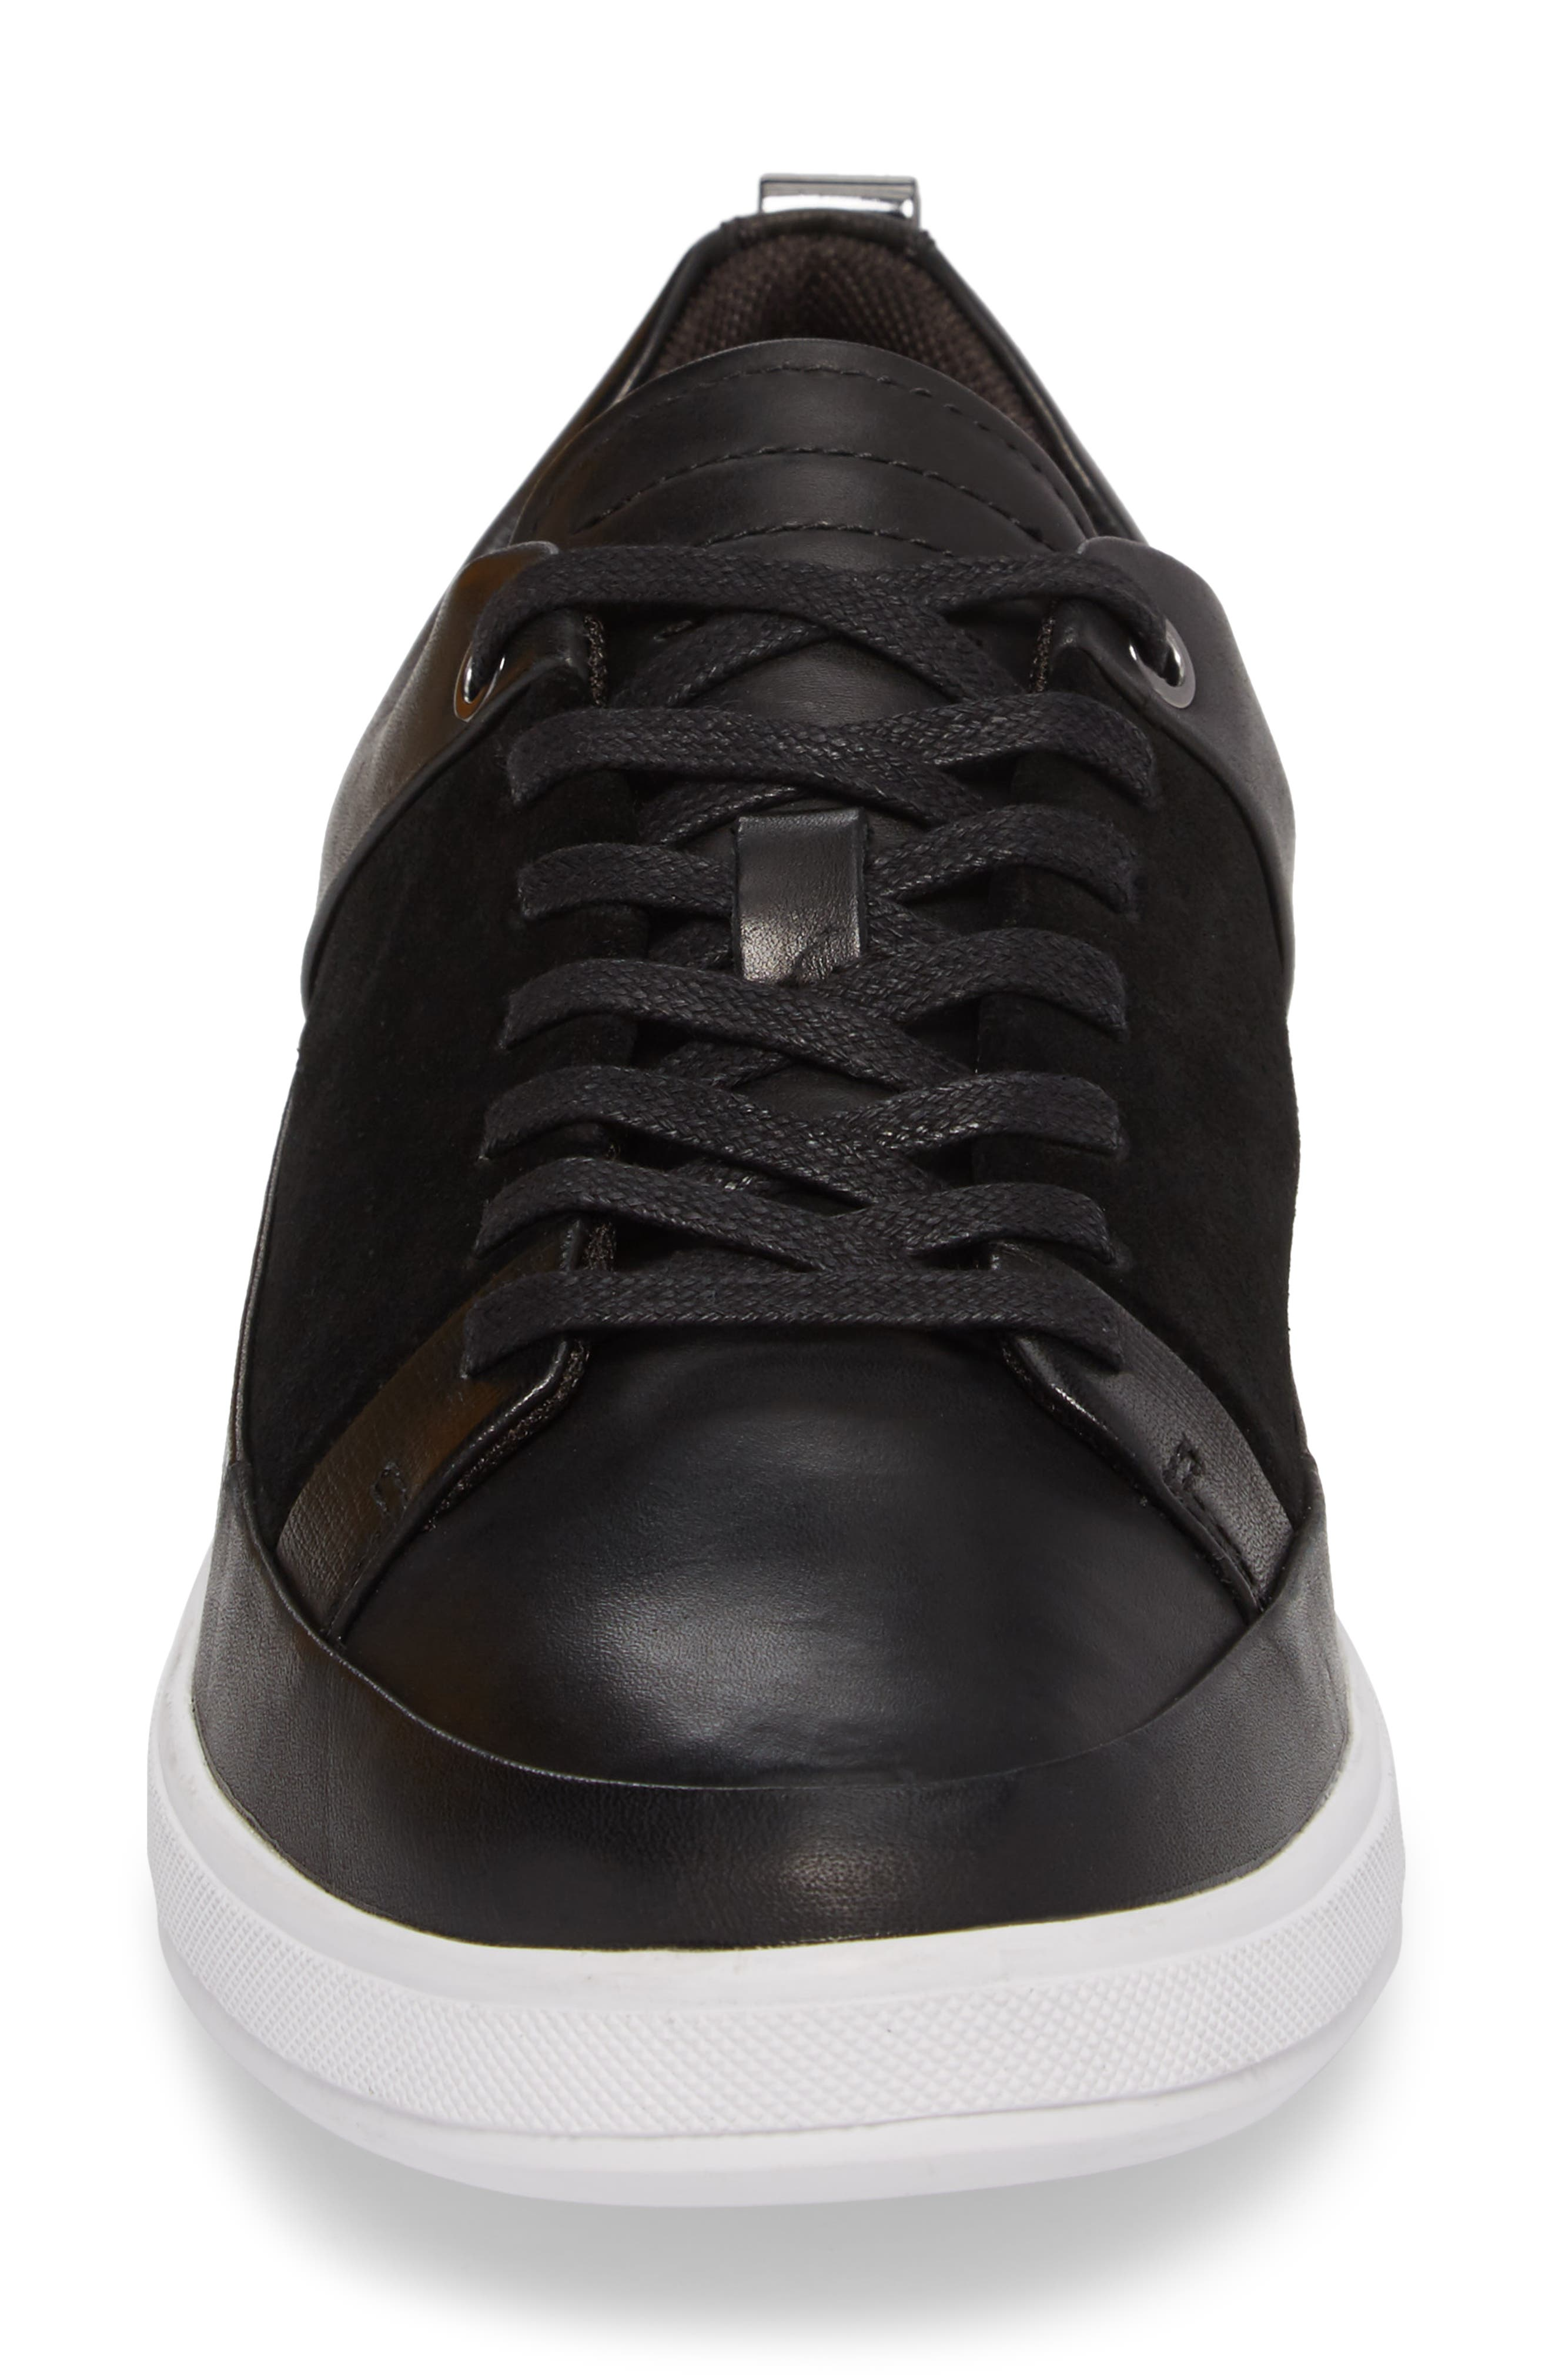 Slick Sneaker,                             Alternate thumbnail 4, color,                             BLACK LEATHER/ SUEDE